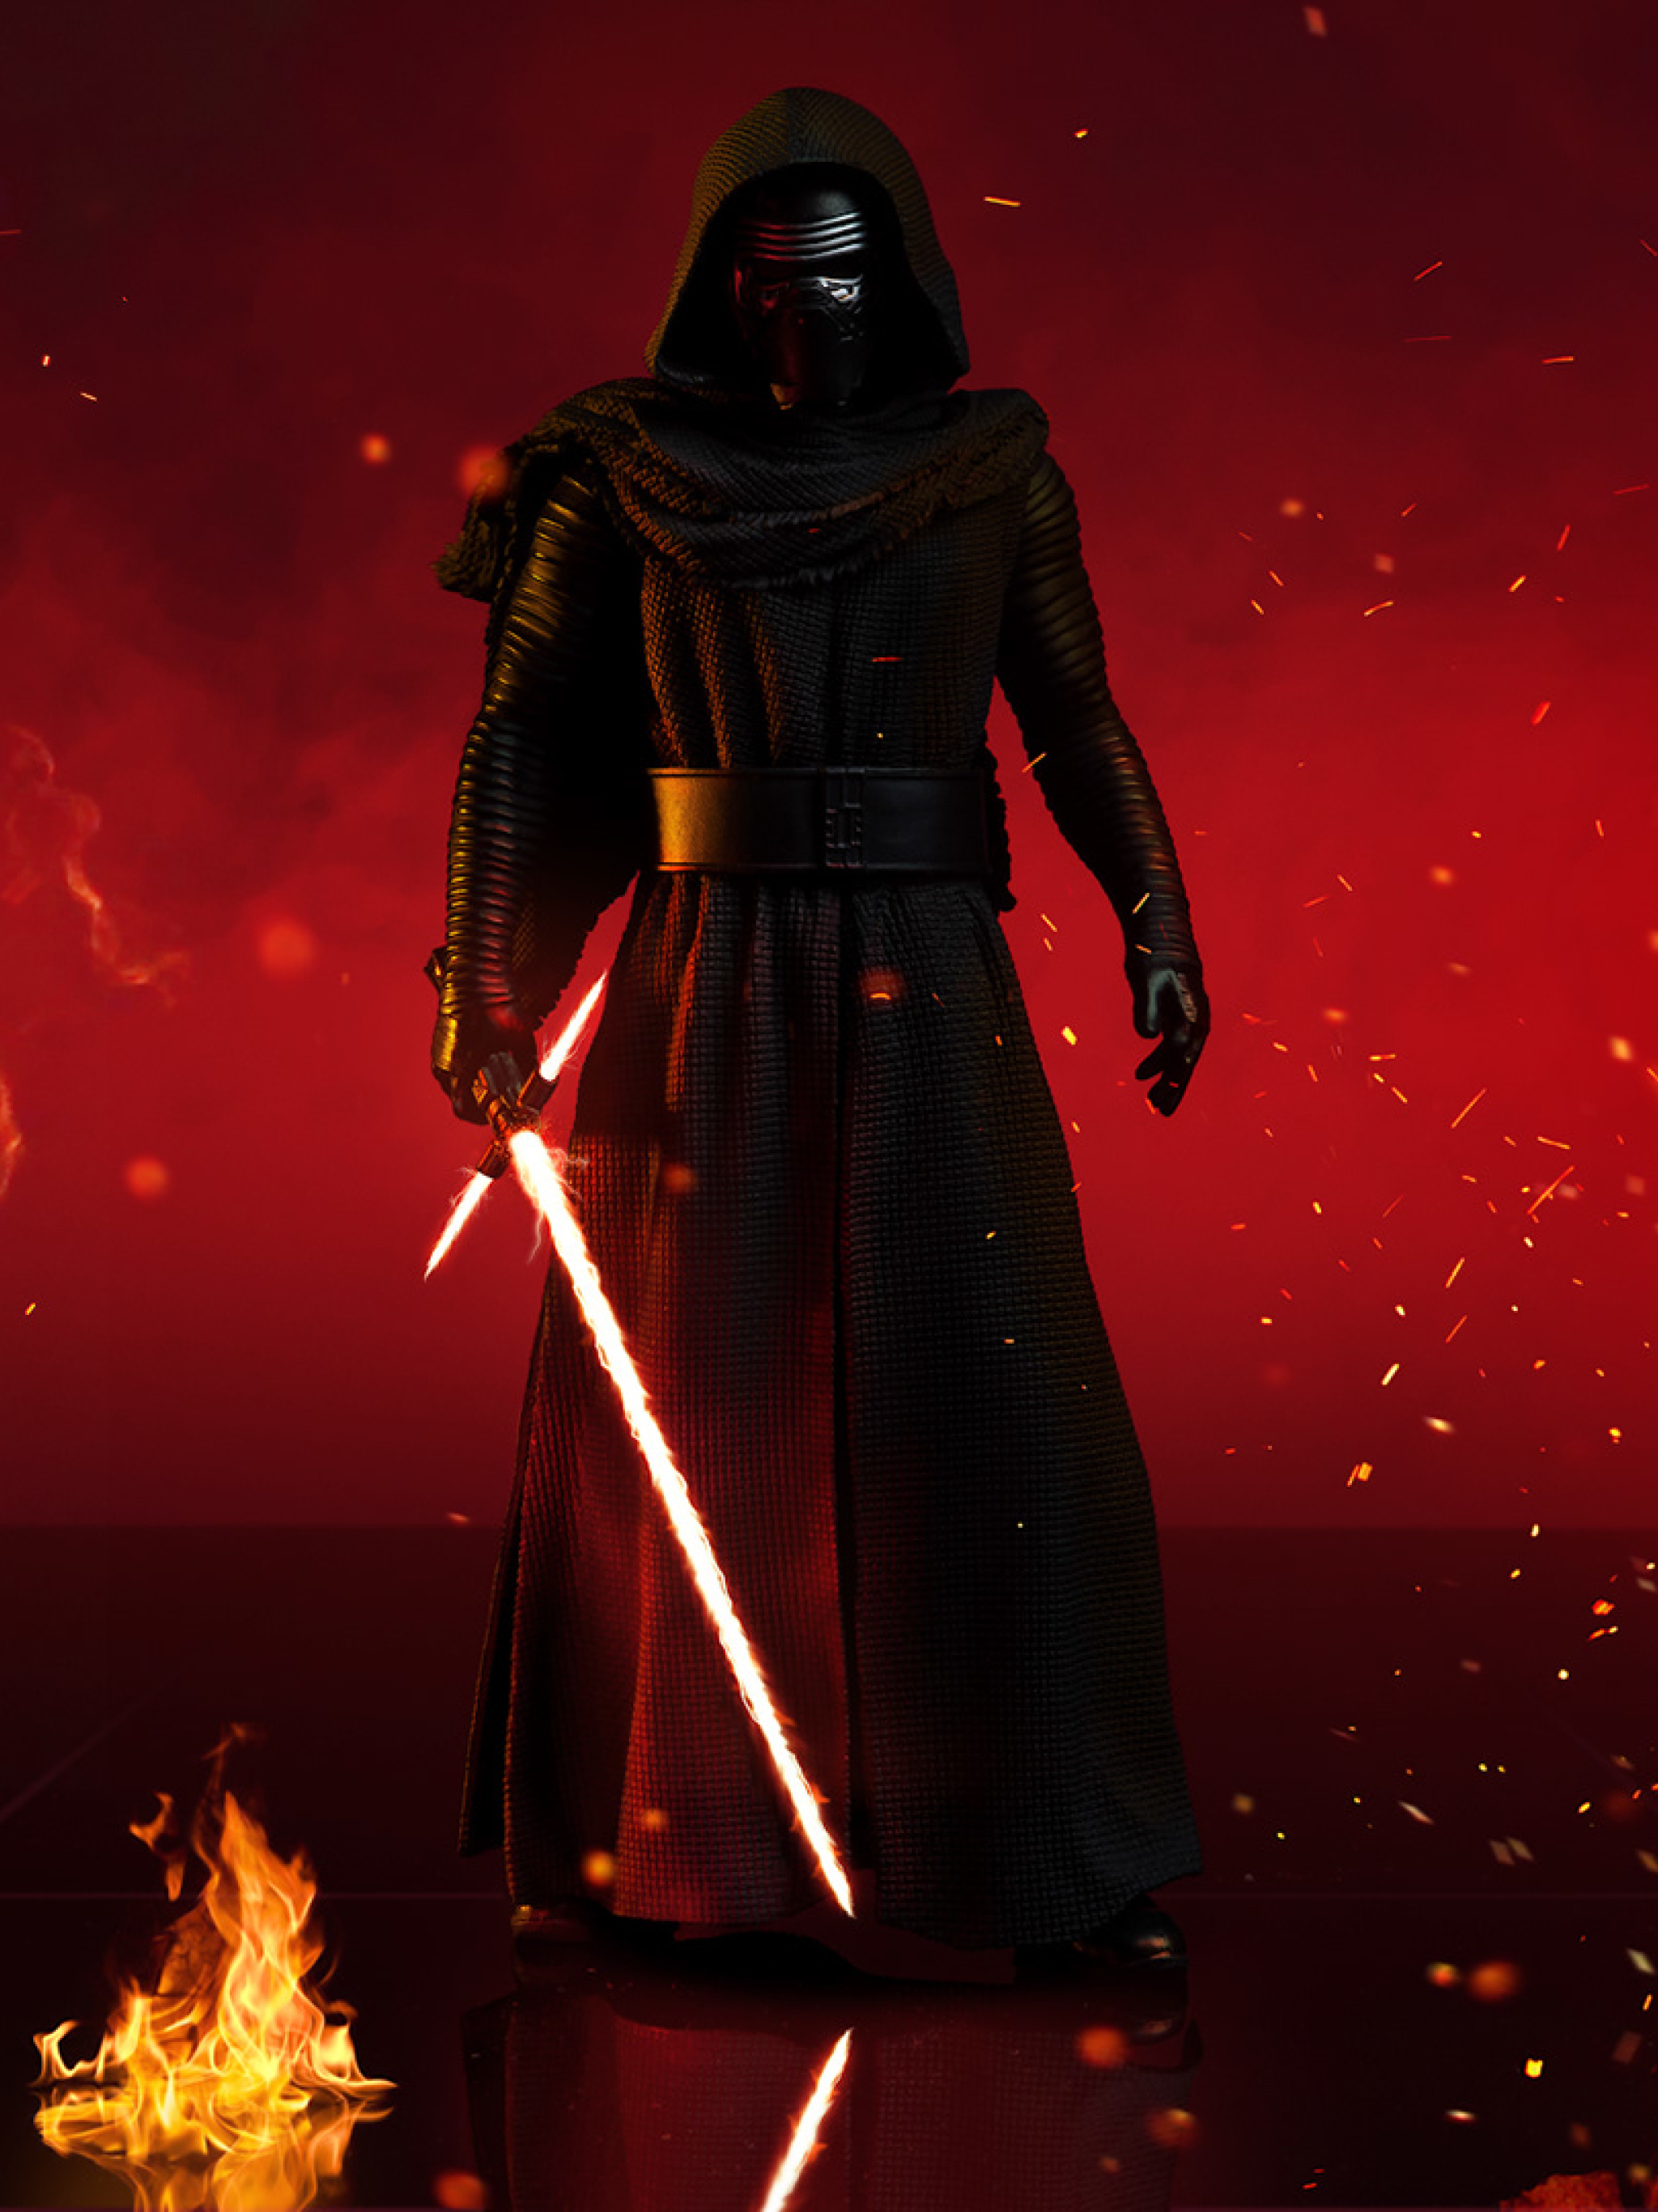 2048x2732 Kylo Ren With Lightsaber In Star Wars 2048x2732